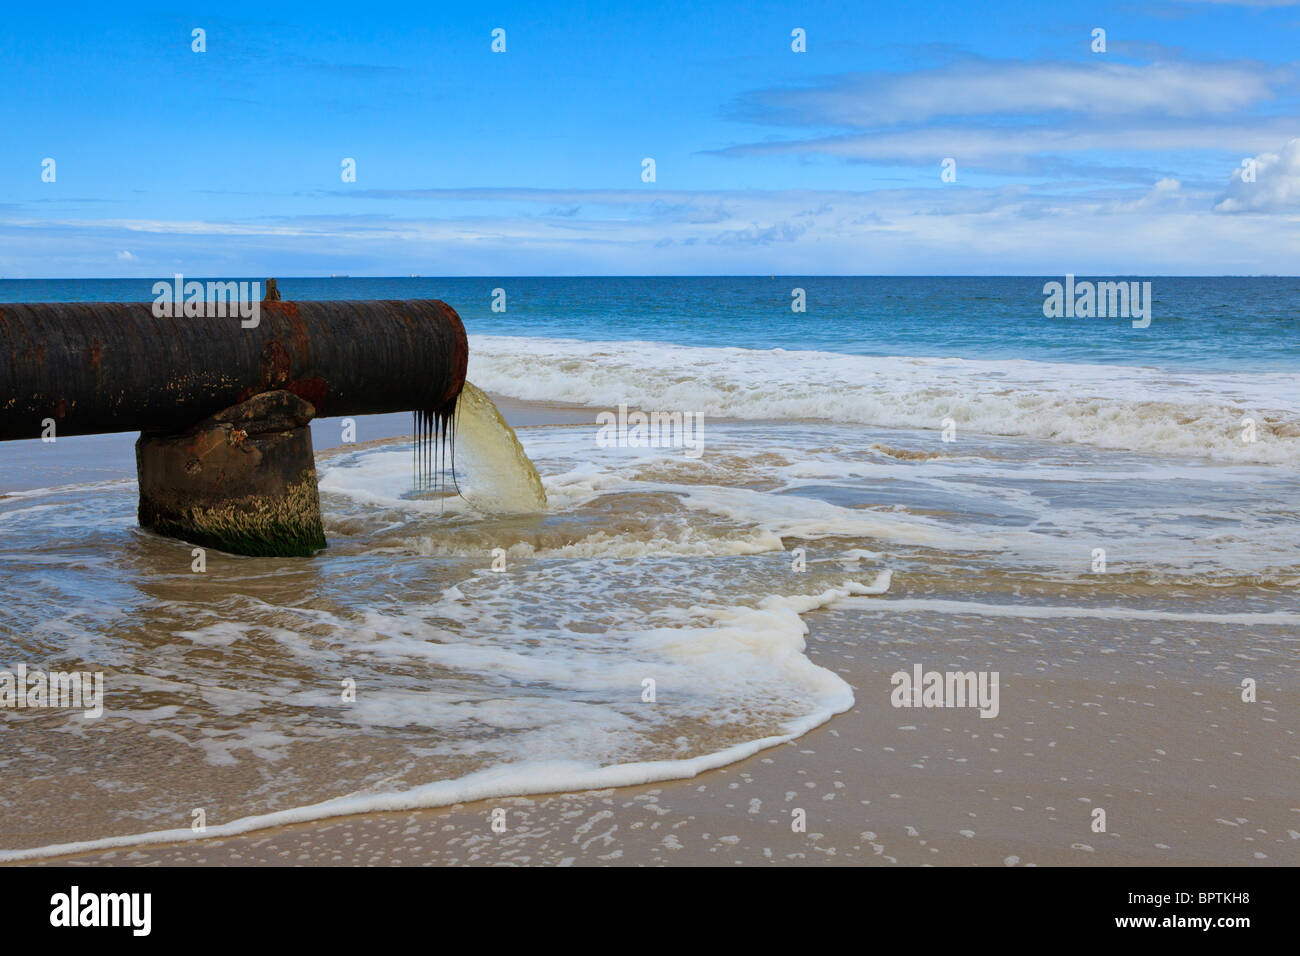 Rainwater drain pipe pouring out onto a beach. - Stock Image